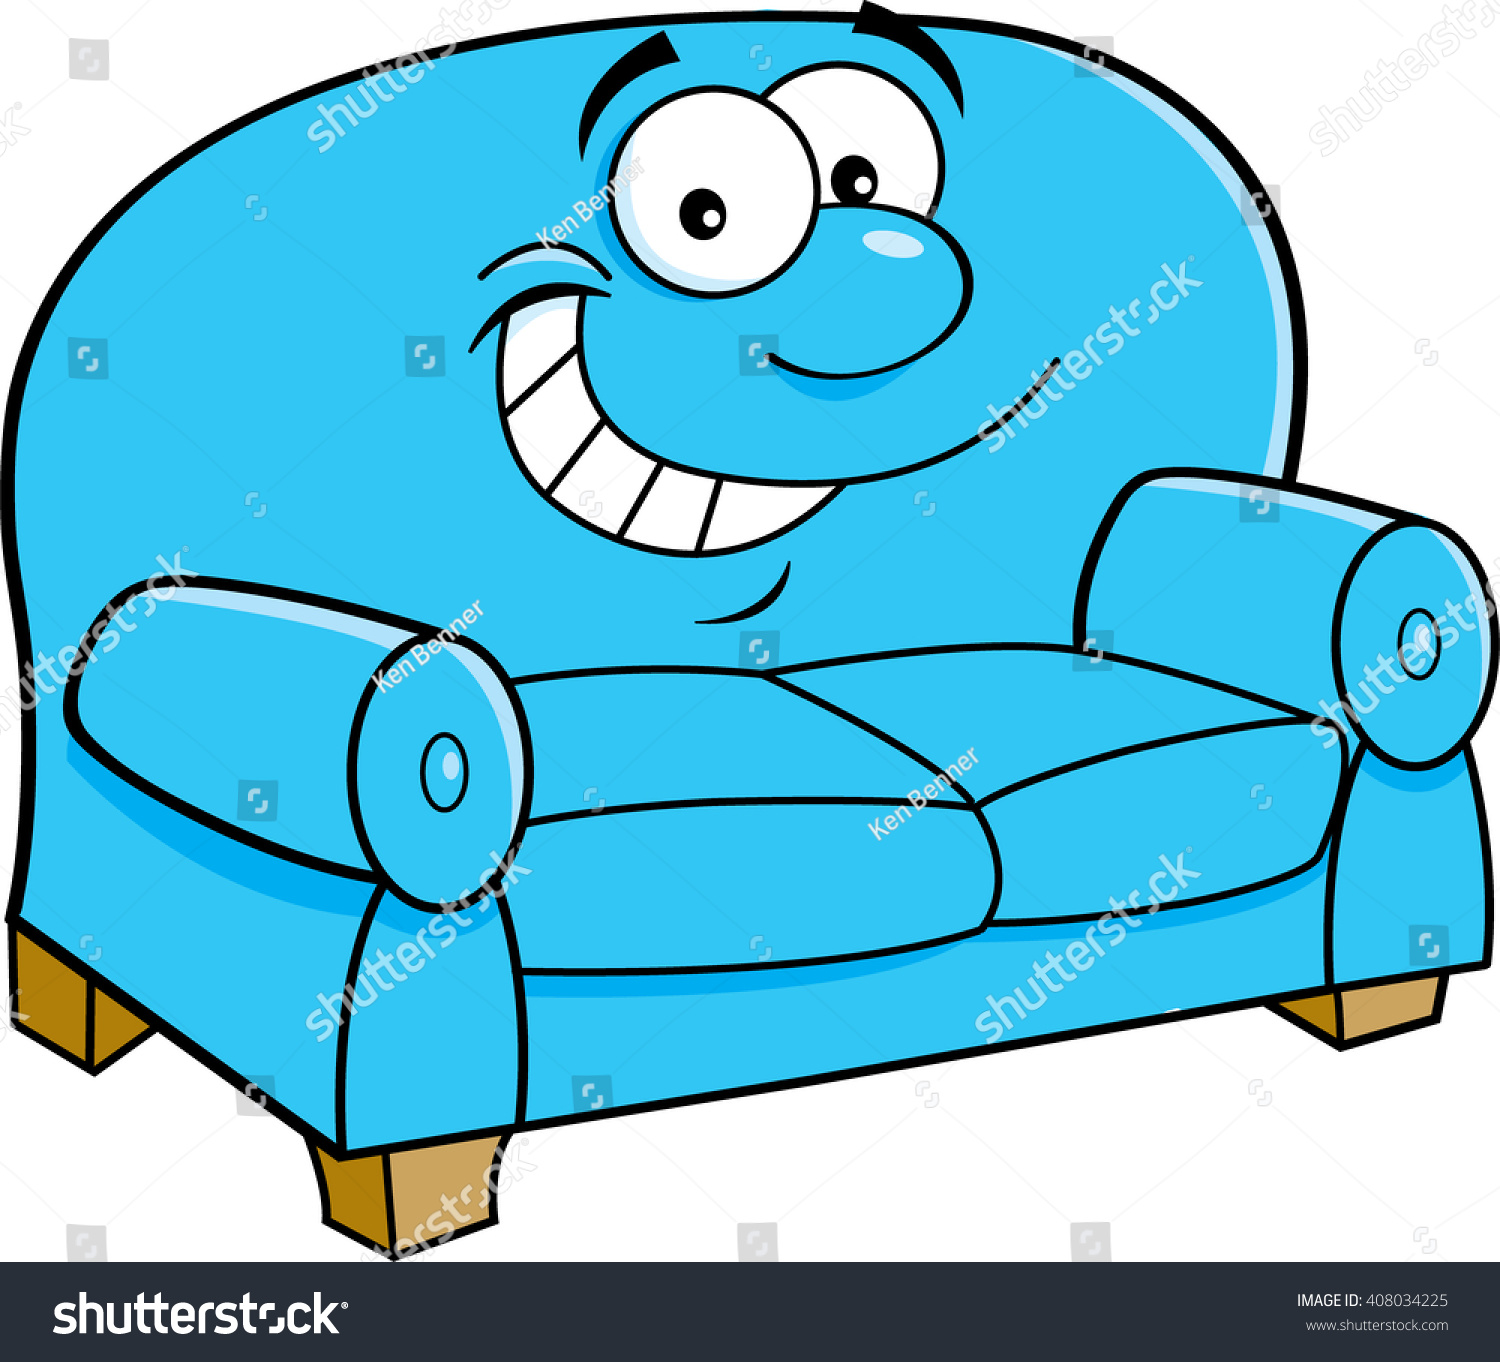 Cartoon Illustration Of A Smiling Couch.